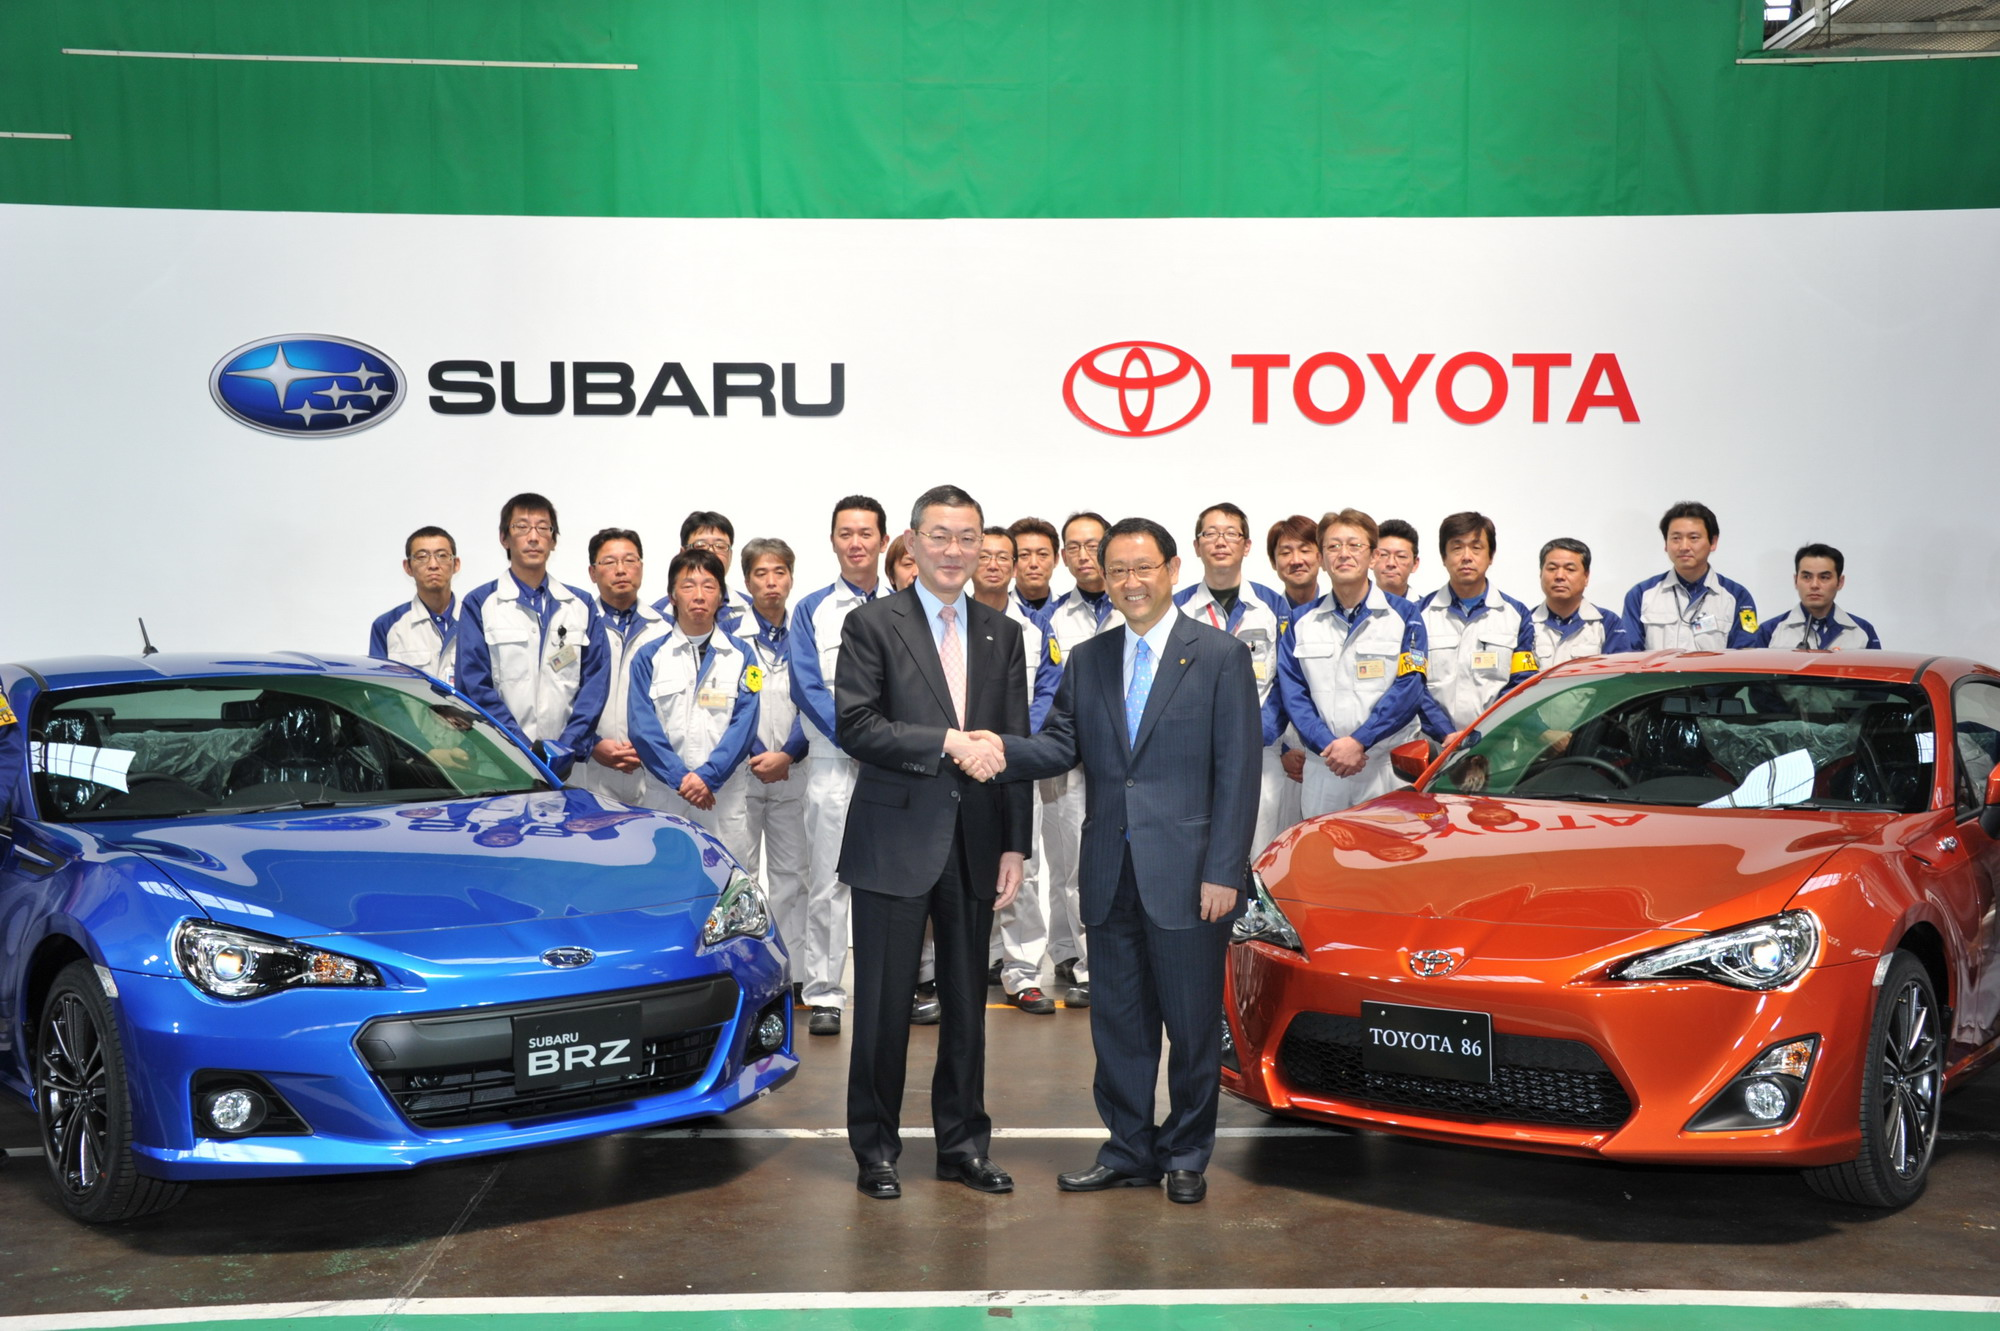 Toyota and Subaru teams have come together to develop electric SUV, What name will they give it?